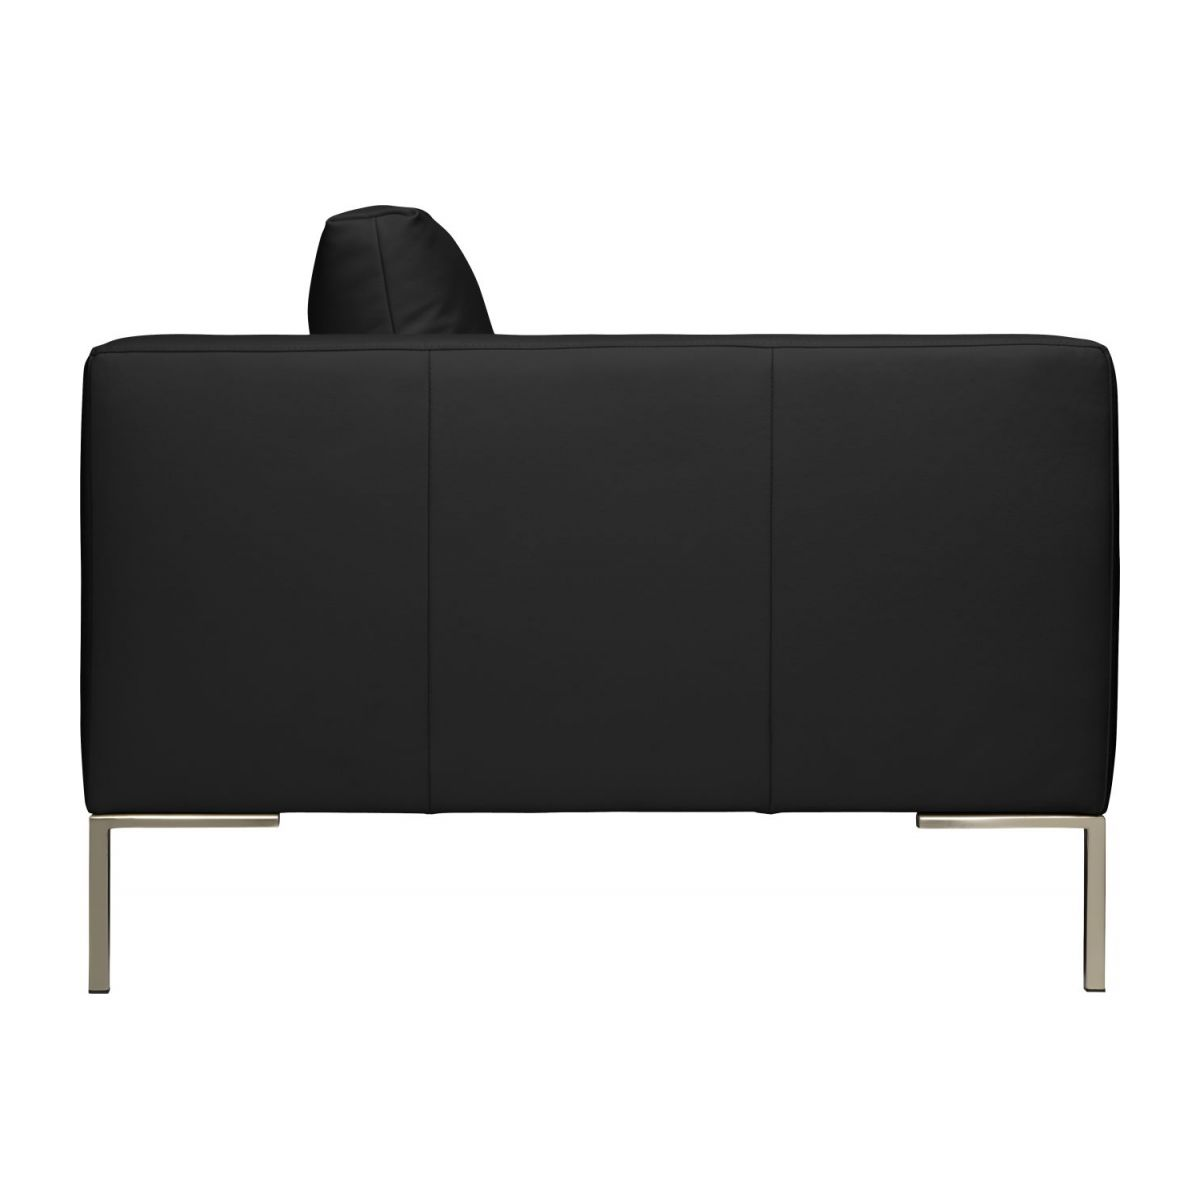 2 seater sofa in Eton veined leather, black n°6